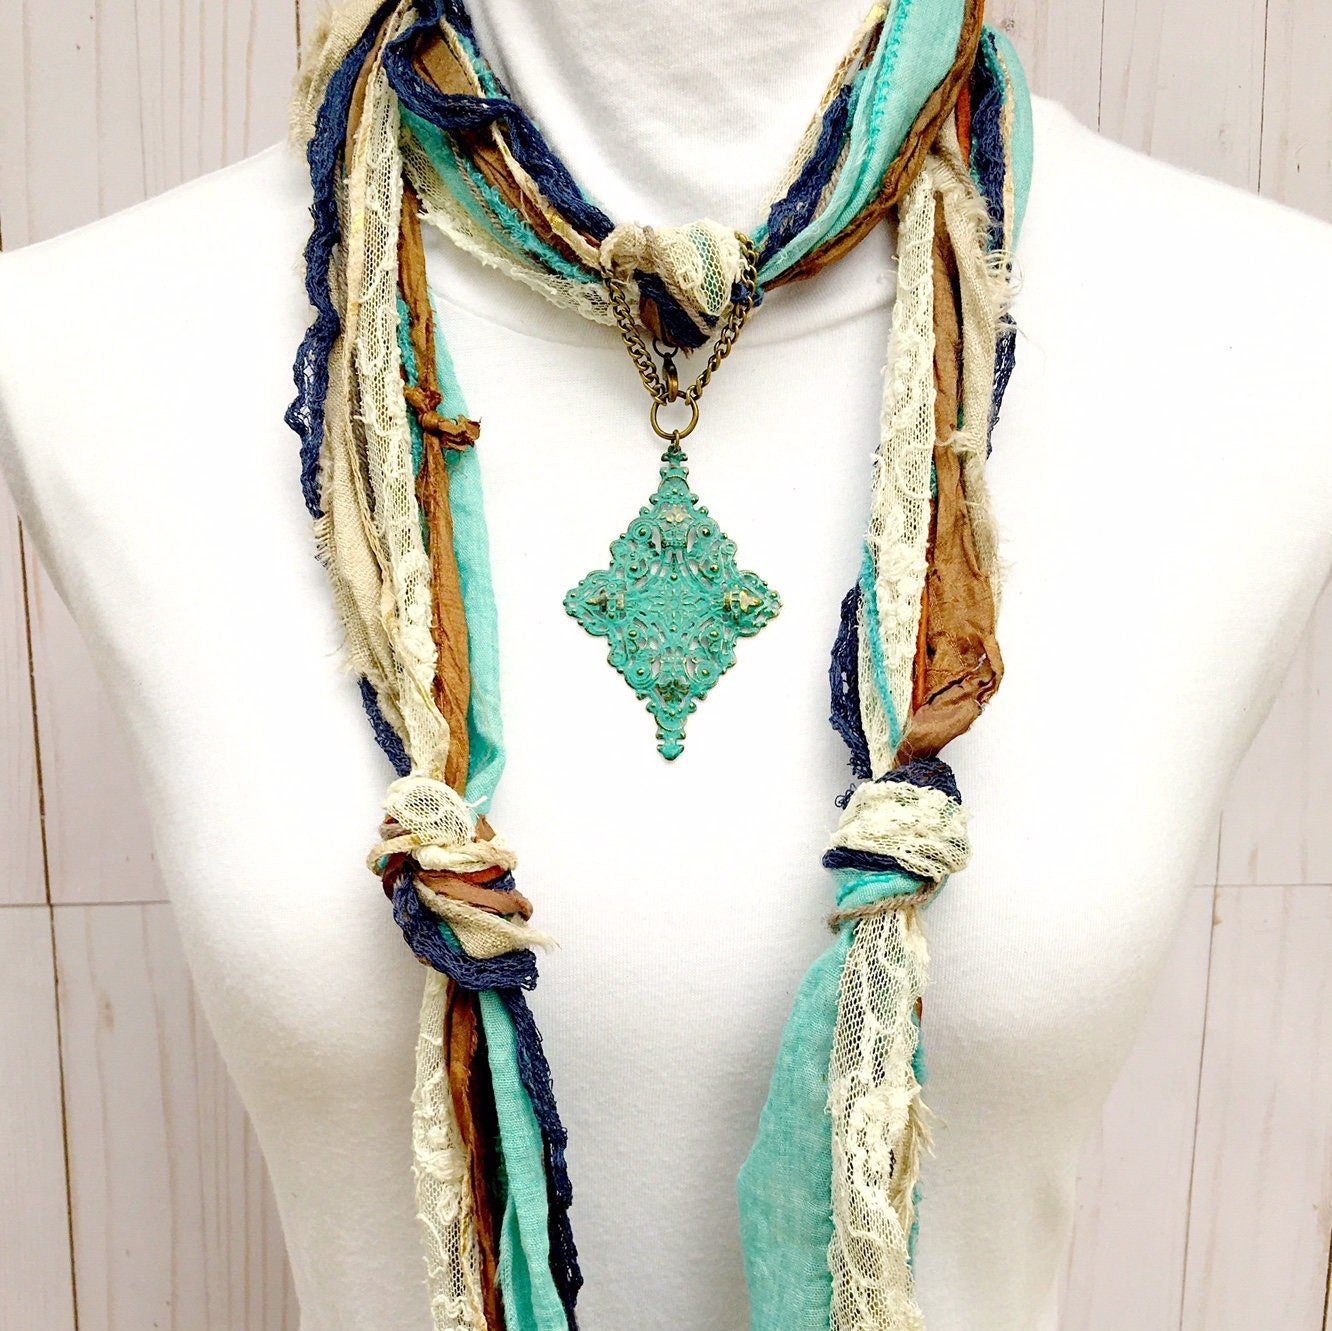 Turquoise scarf jewelry turquoise filigree pendant scarf turquoise scarf jewelry turquoise filigree pendant scarf necklace jewelry metal turquoise scarf pendant scarf ring scarf slide mozeypictures Choice Image